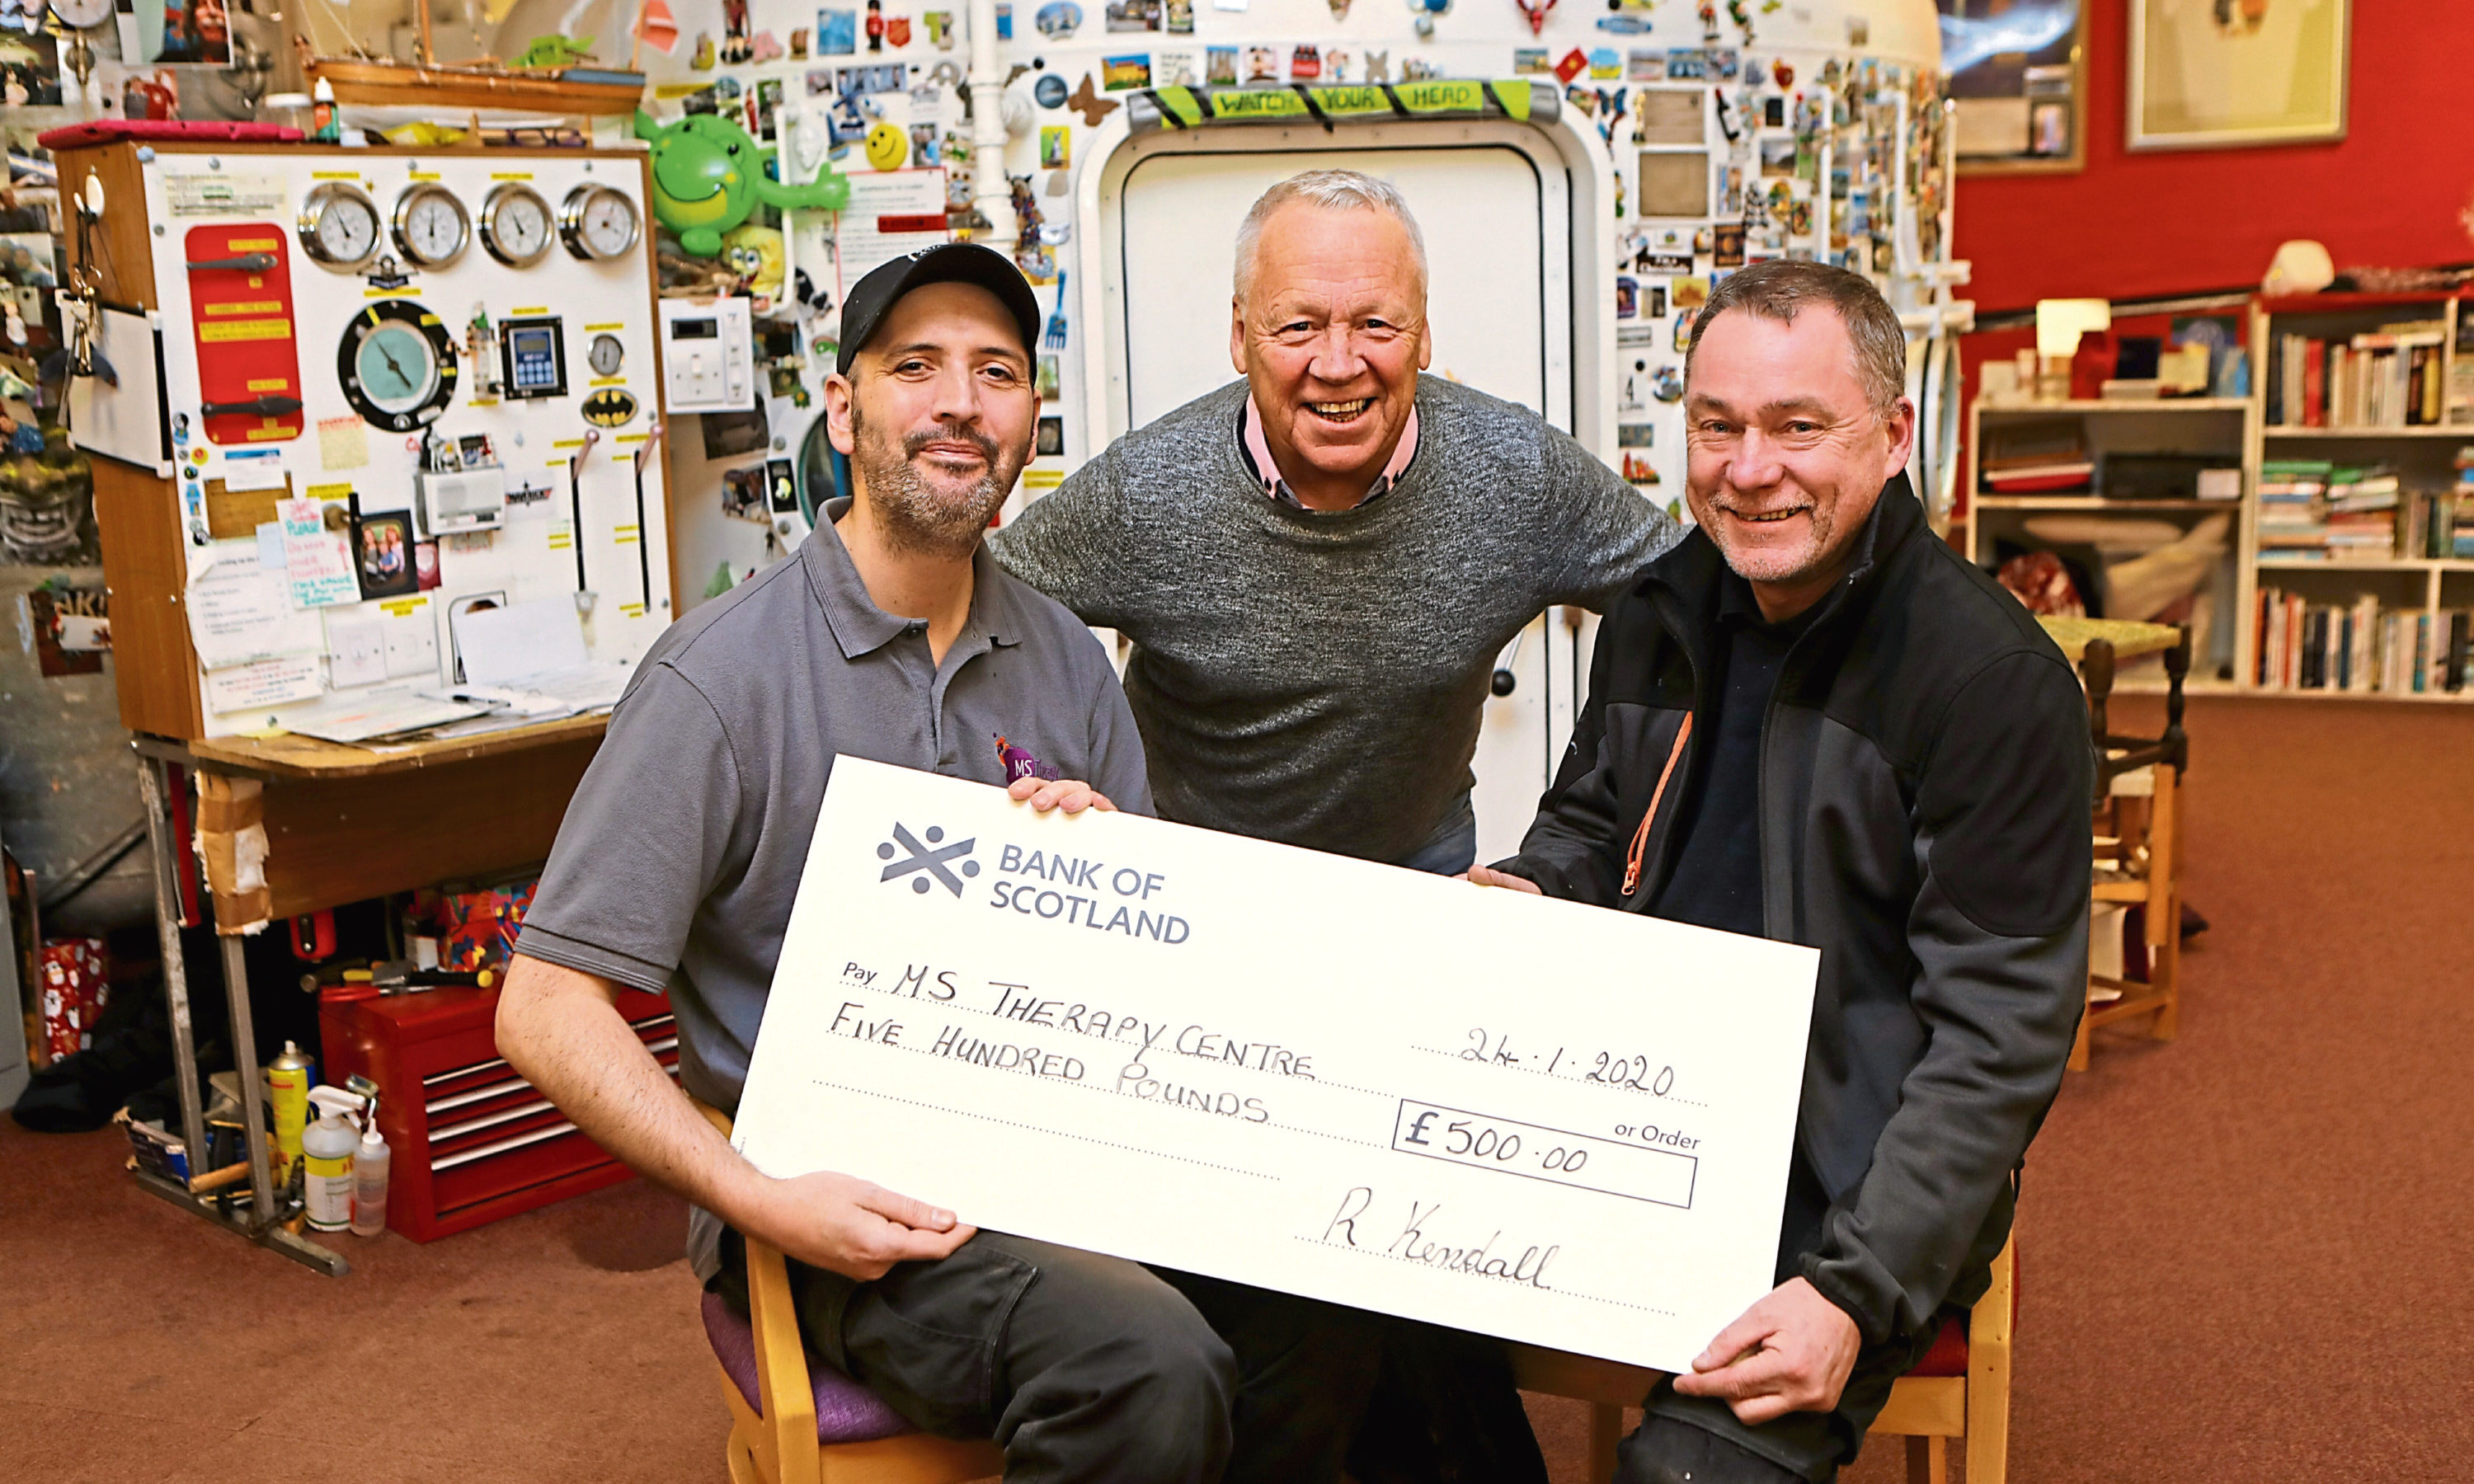 Ross (right) handing over the cheque to Alwyn, as Duncan Fraser, one of Ross's friends, looks on.